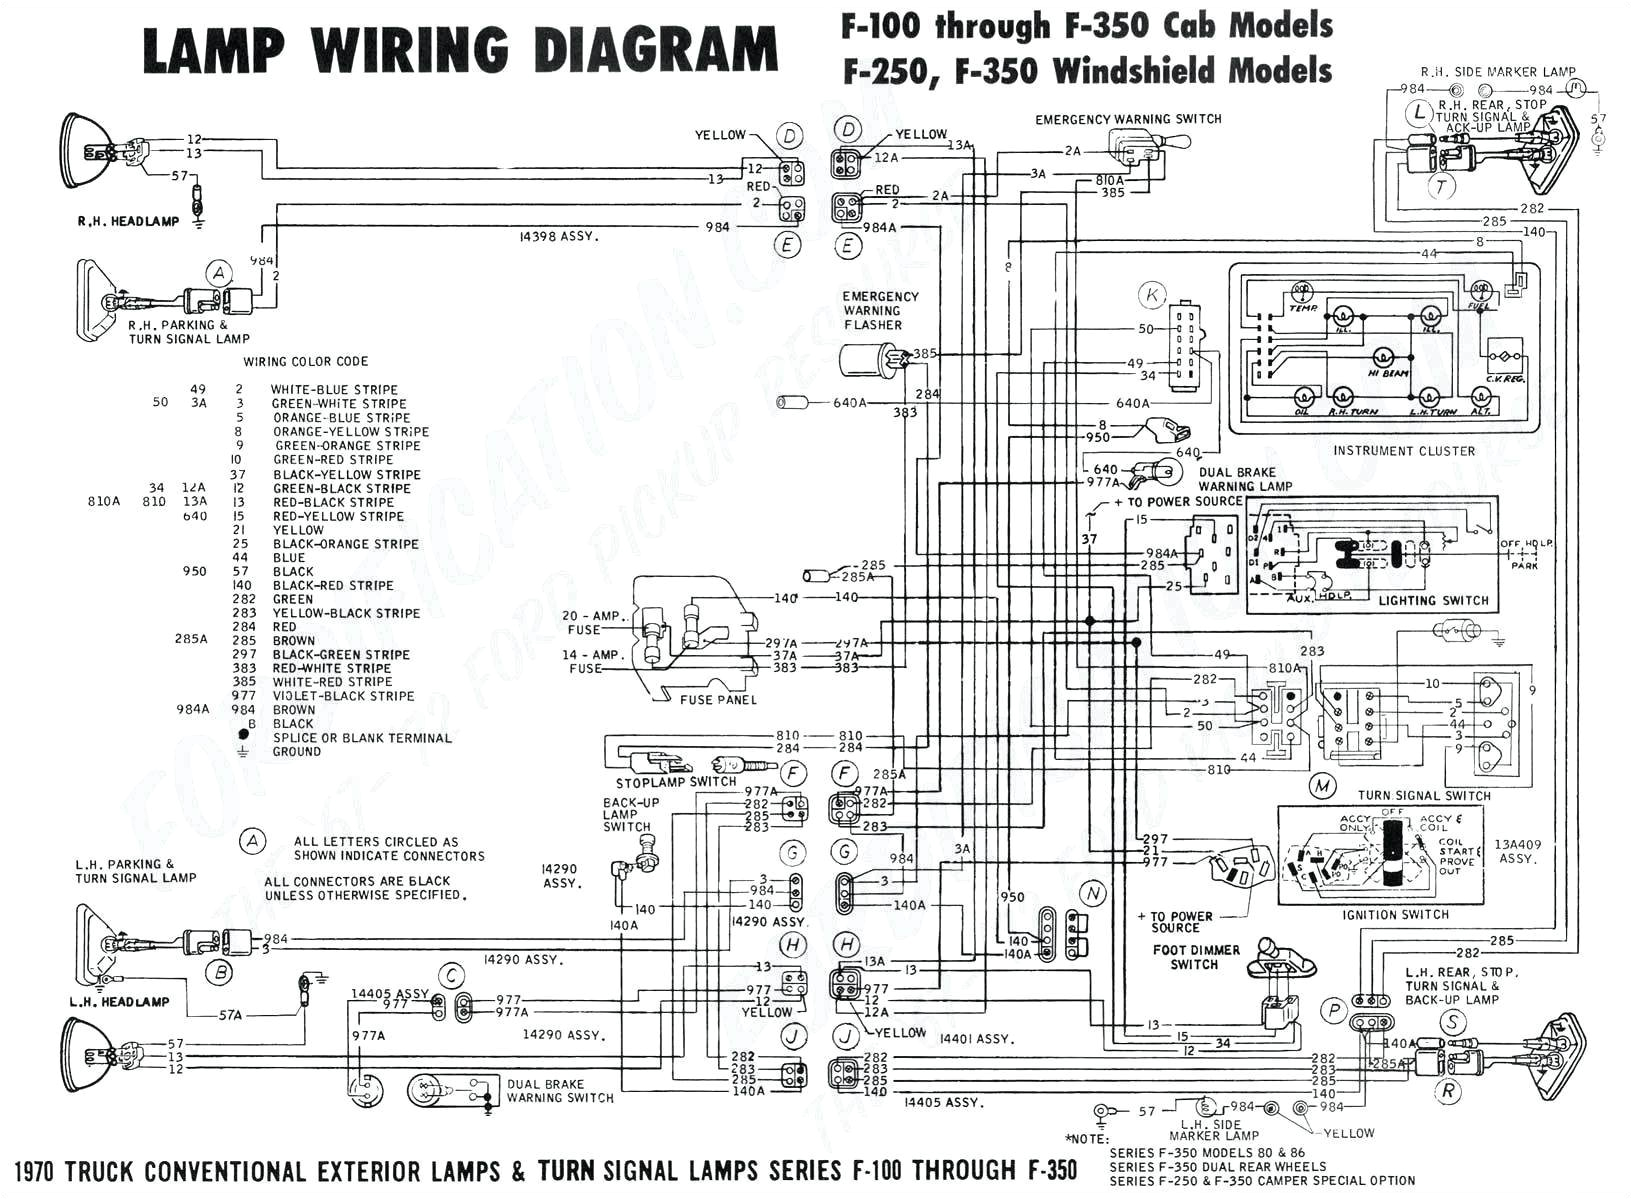 wiring diagram 2006 chevy silverado horn location transmission horn location for 2003 chevy silverado get free image about wiring